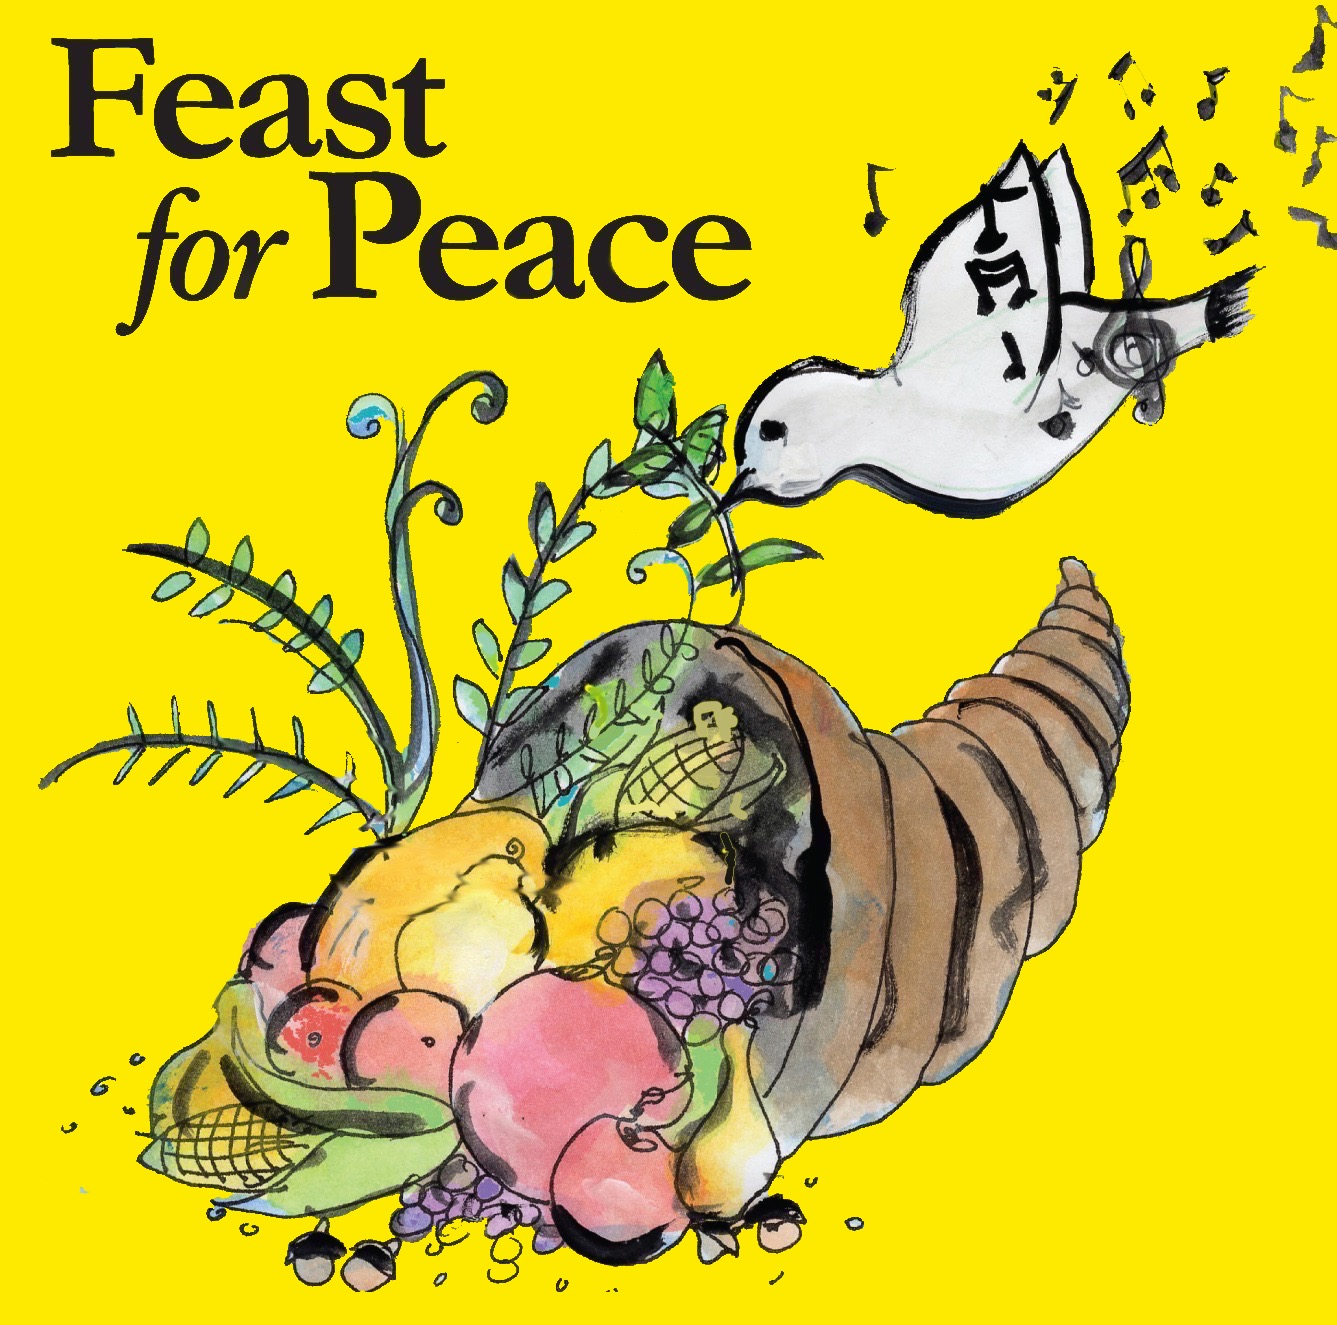 Feast for Peace, 27 March through Wednesday 1 April 2020